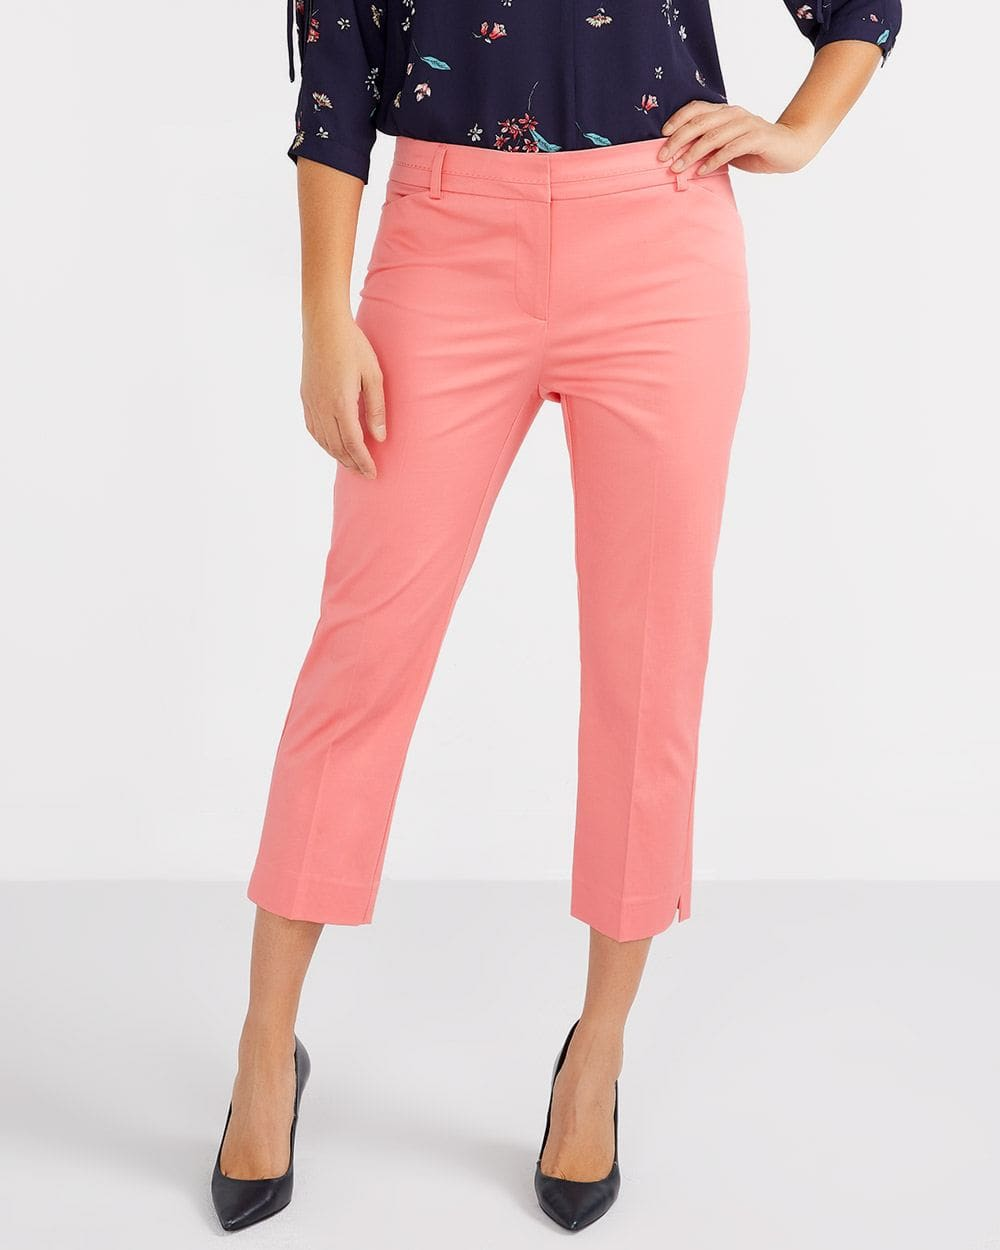 Cotton Blend Solid Cropped Pants